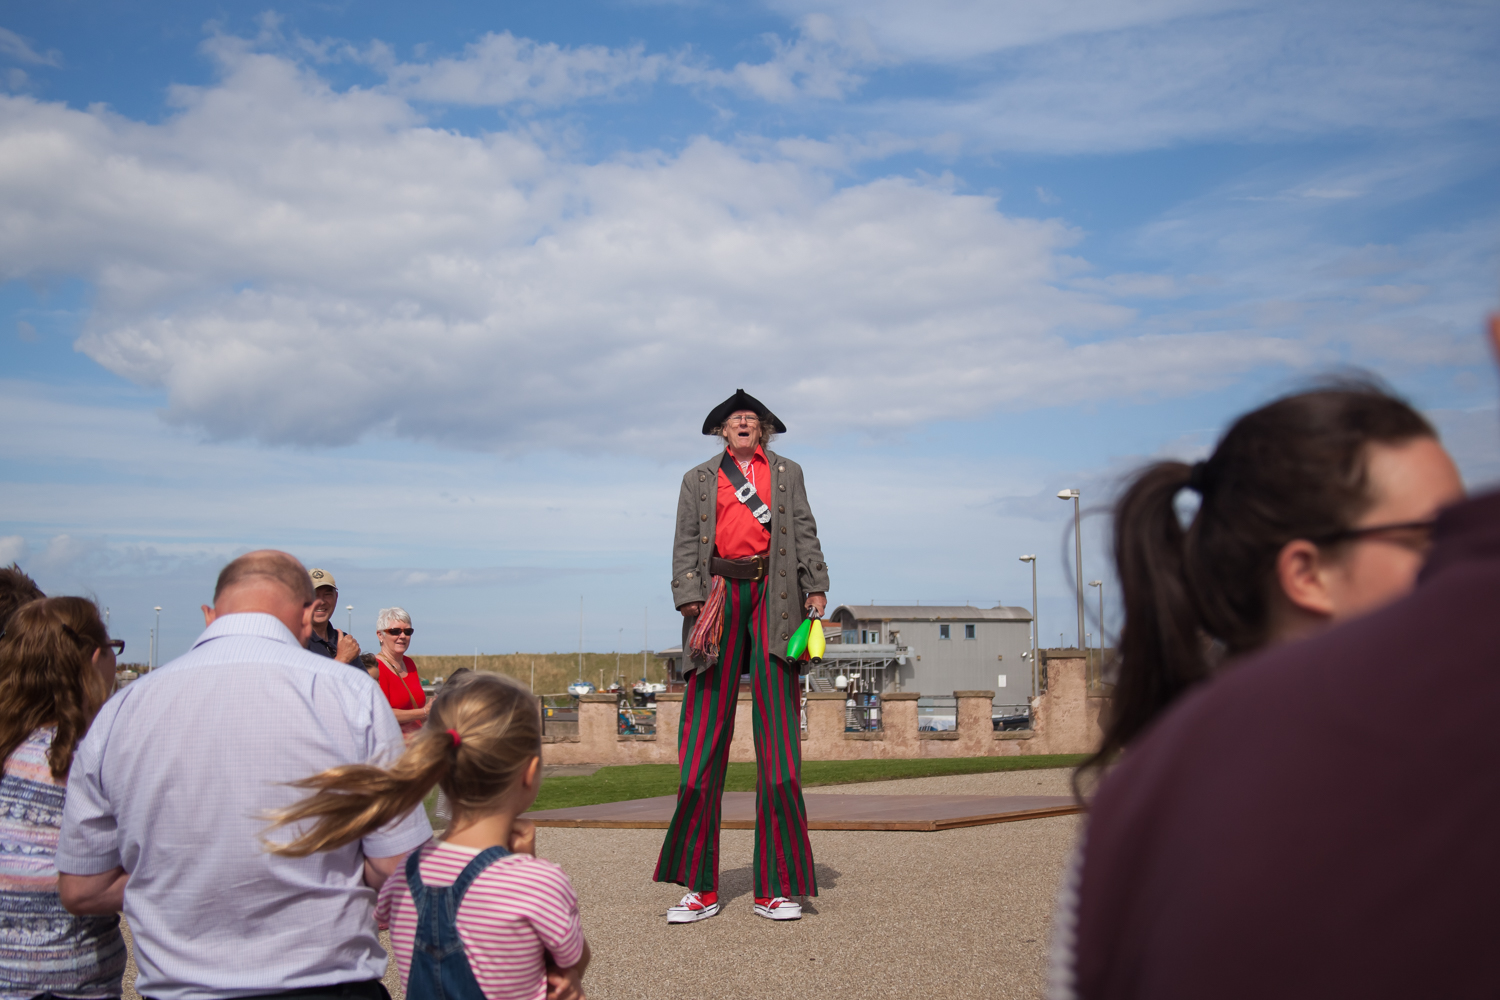 PICTORIAL_BERWICK_eyemouth-gunsgreen-extravaganza-photography-entertainment-party-event-photographer-harbour-gary-dunn-dancers-stilts-performances-speeches-day-out-summer-4529.jpg